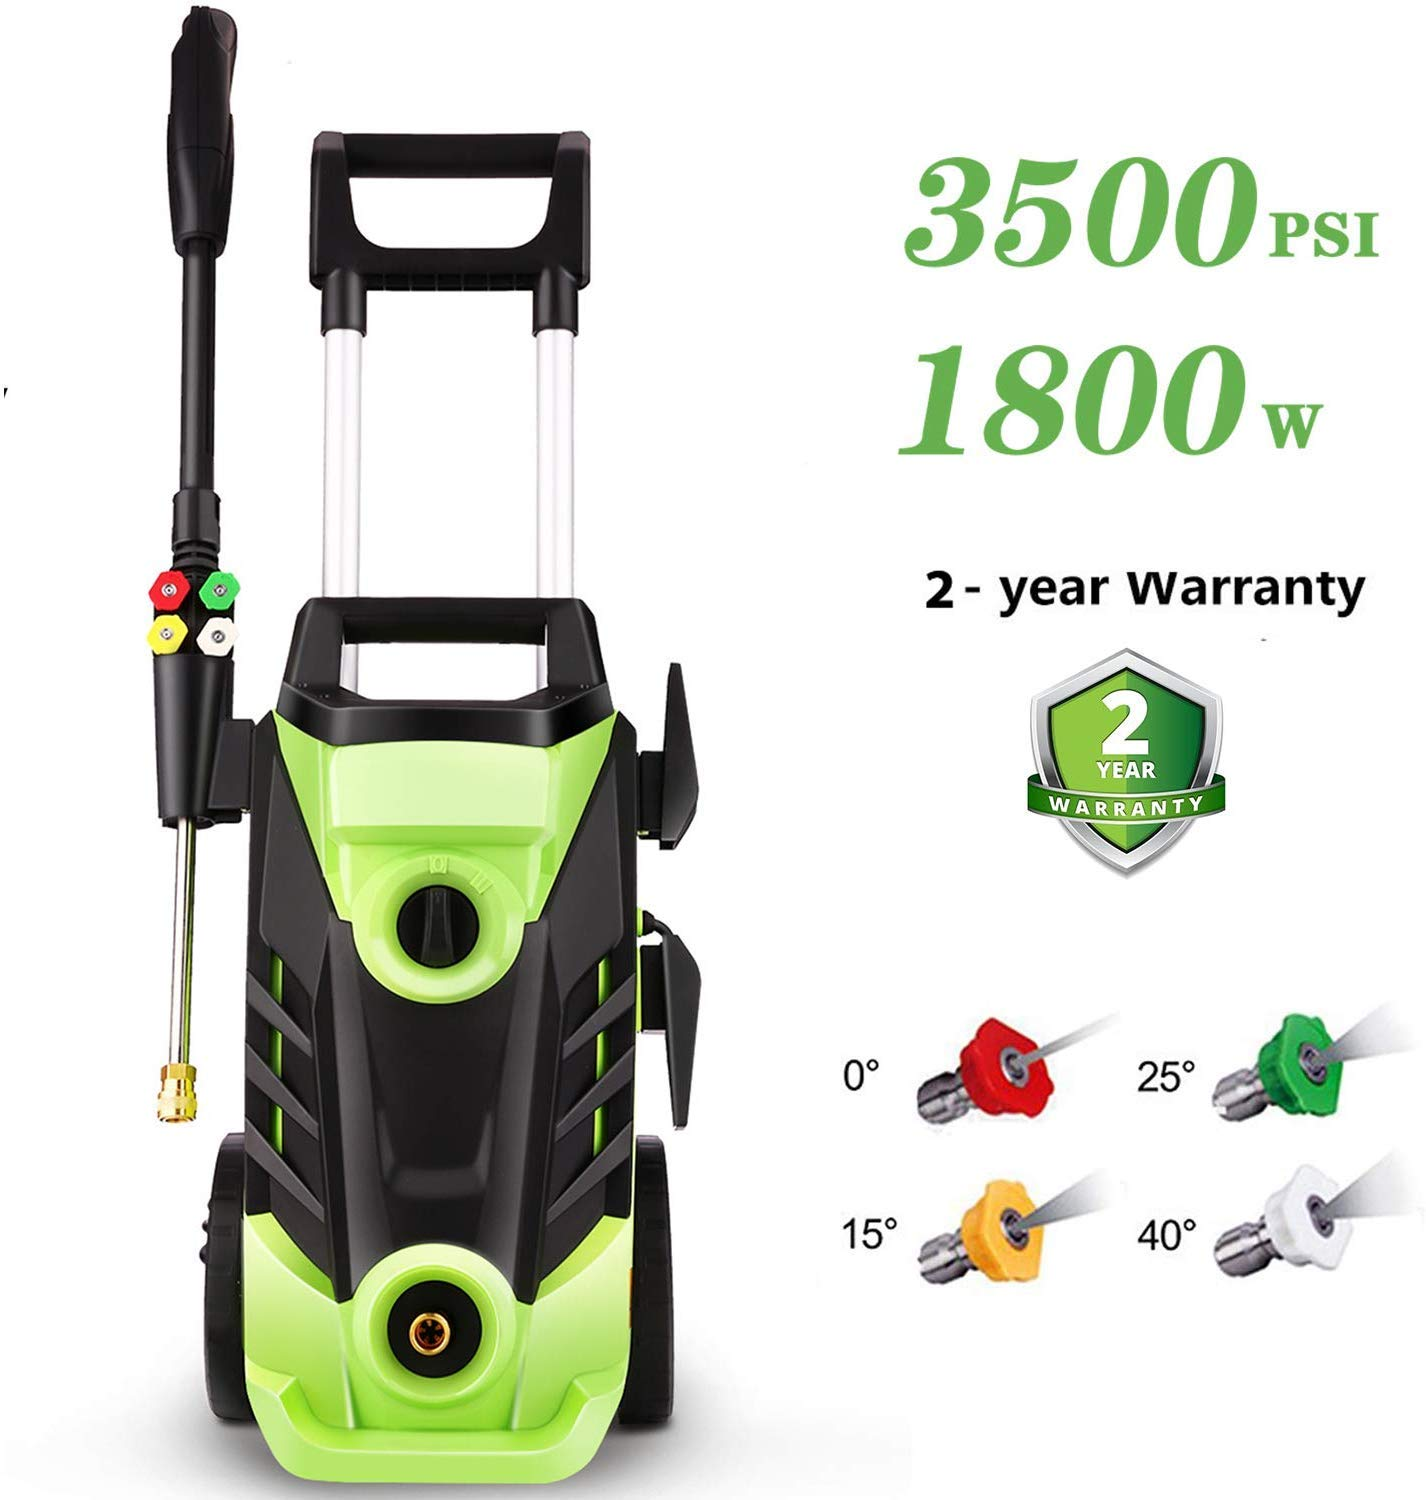 Homdox 3500 PSI Pressure Power Washer Cleaner, 2.6GPM High Pressure Washer, Professional Washer Cleaner Machine with 4 Interchangeable Nozzles,with Telescopic by Homdox